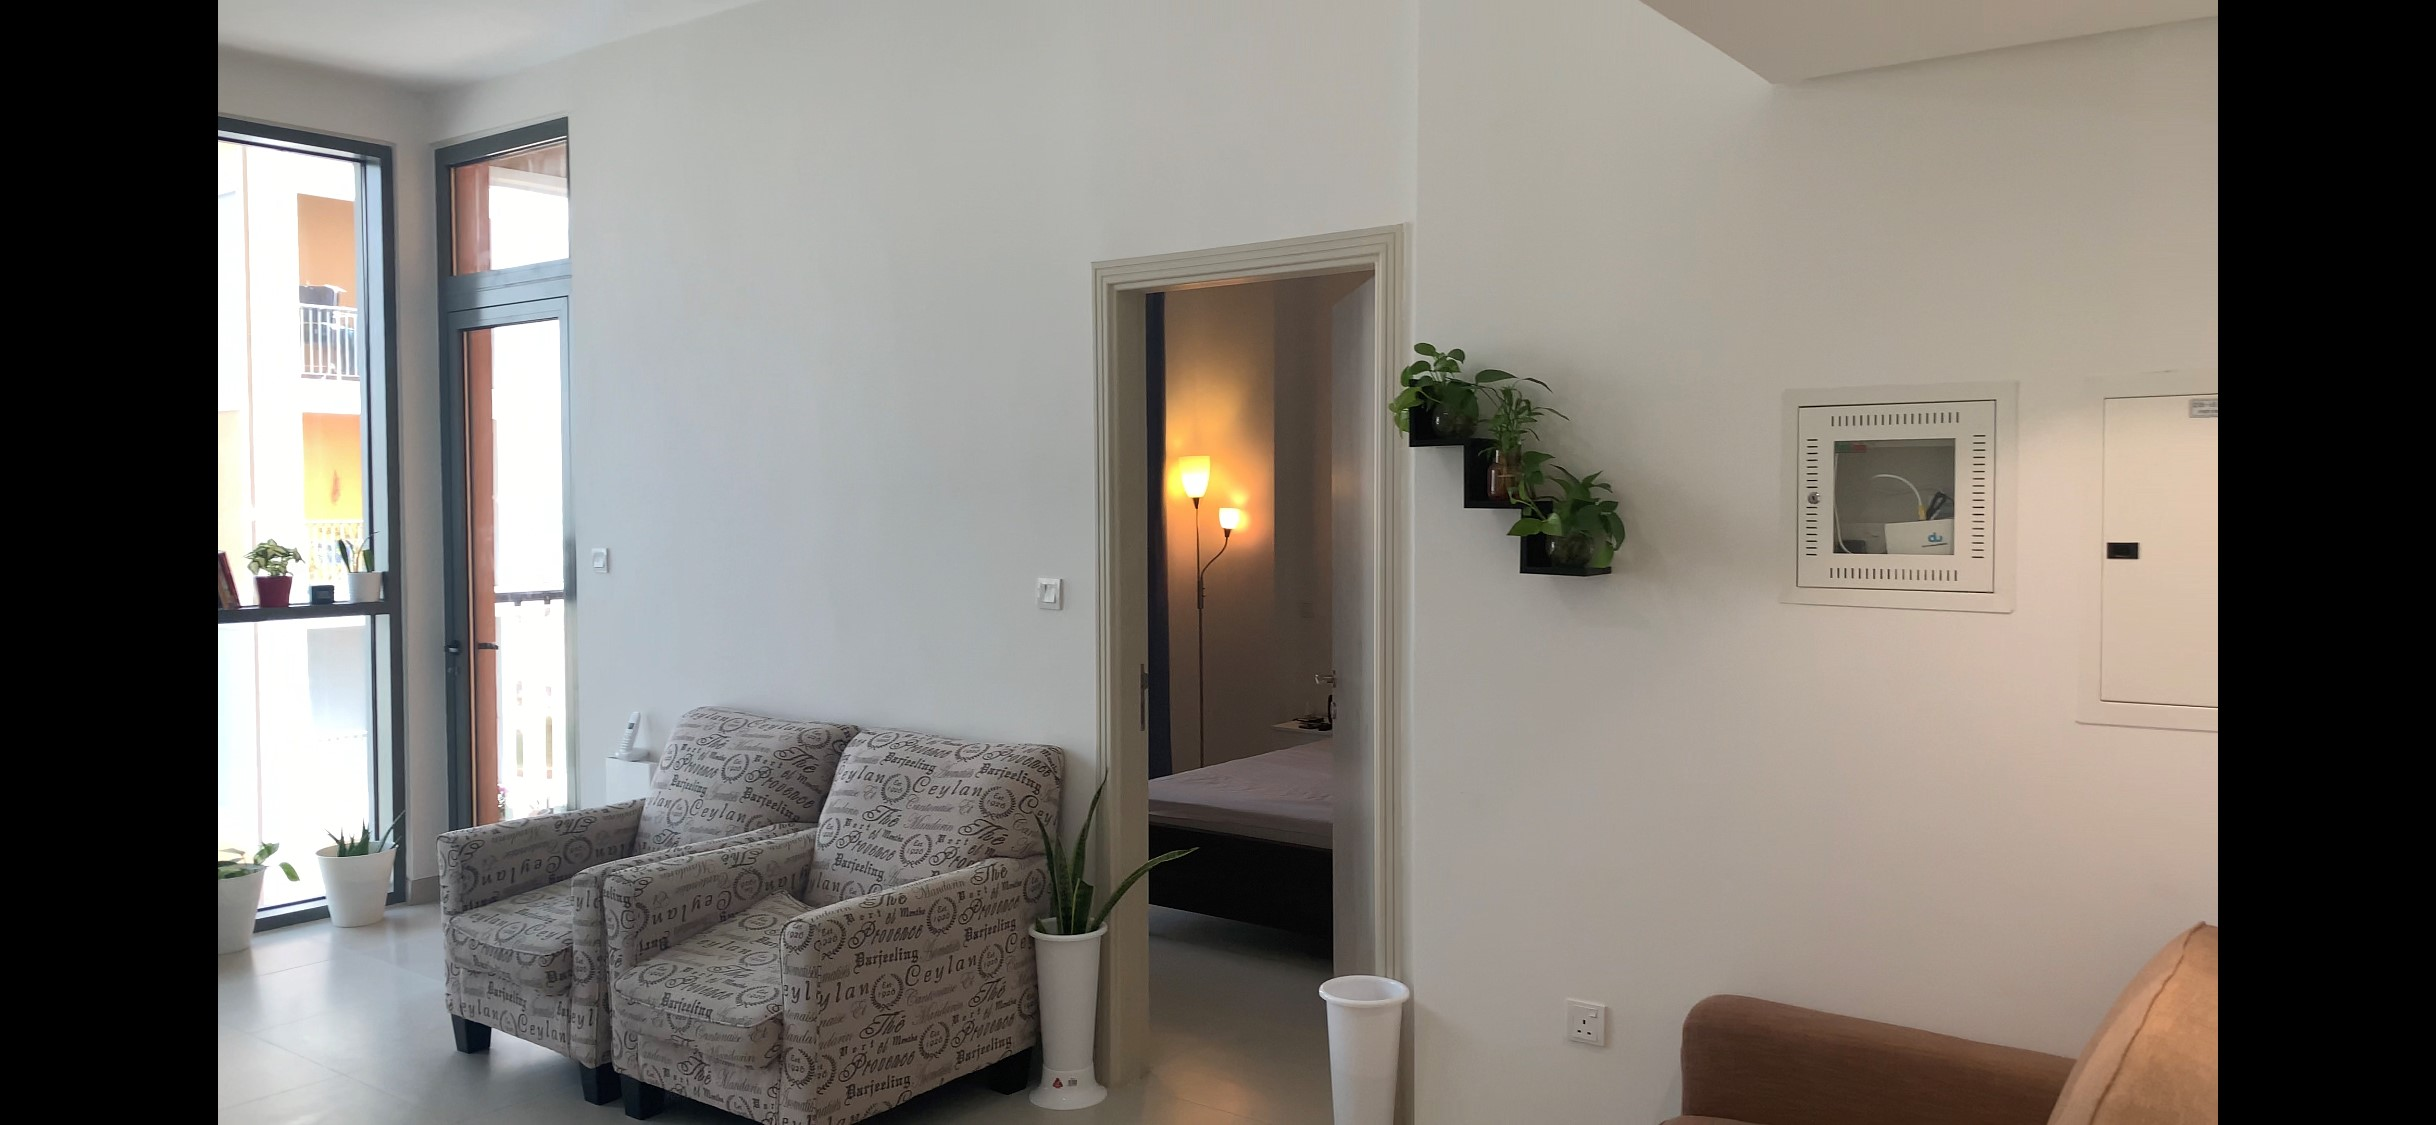 Looking for Flatmates 1200 AED